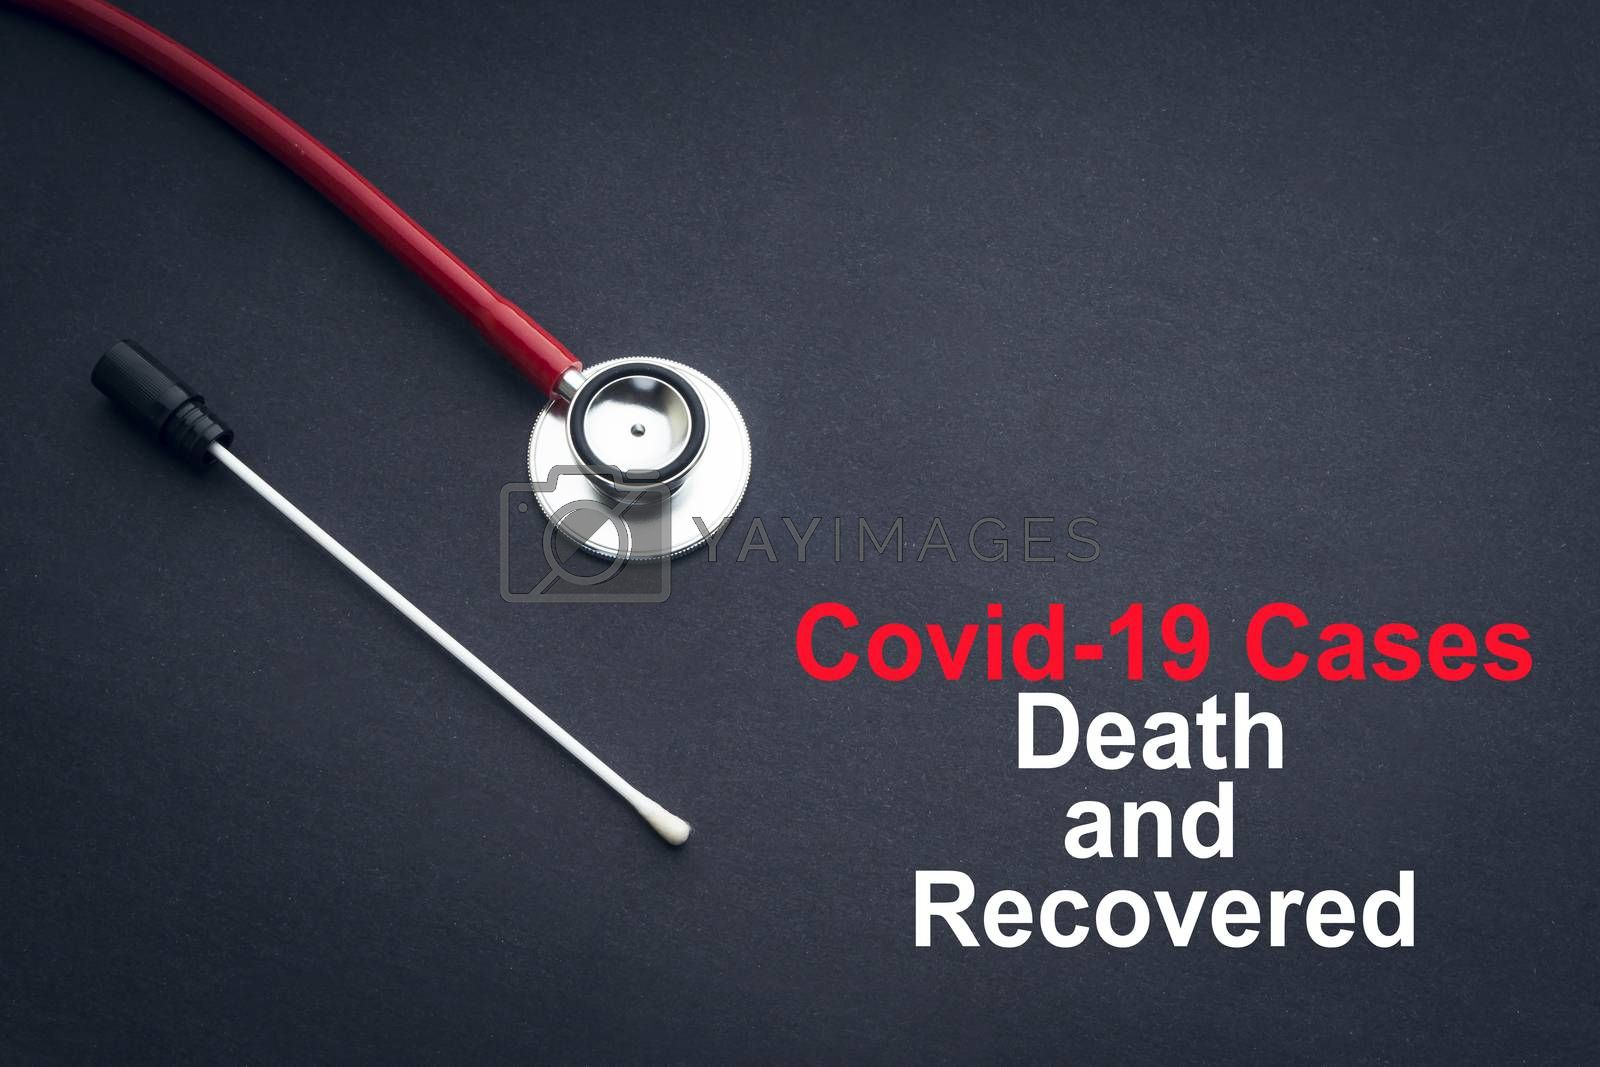 COVID-19 or CORONAVIRUS DEATH AND RECOVERED text with stethoscope and medical swab on black background. Covid-19 or Coronavirus concept.